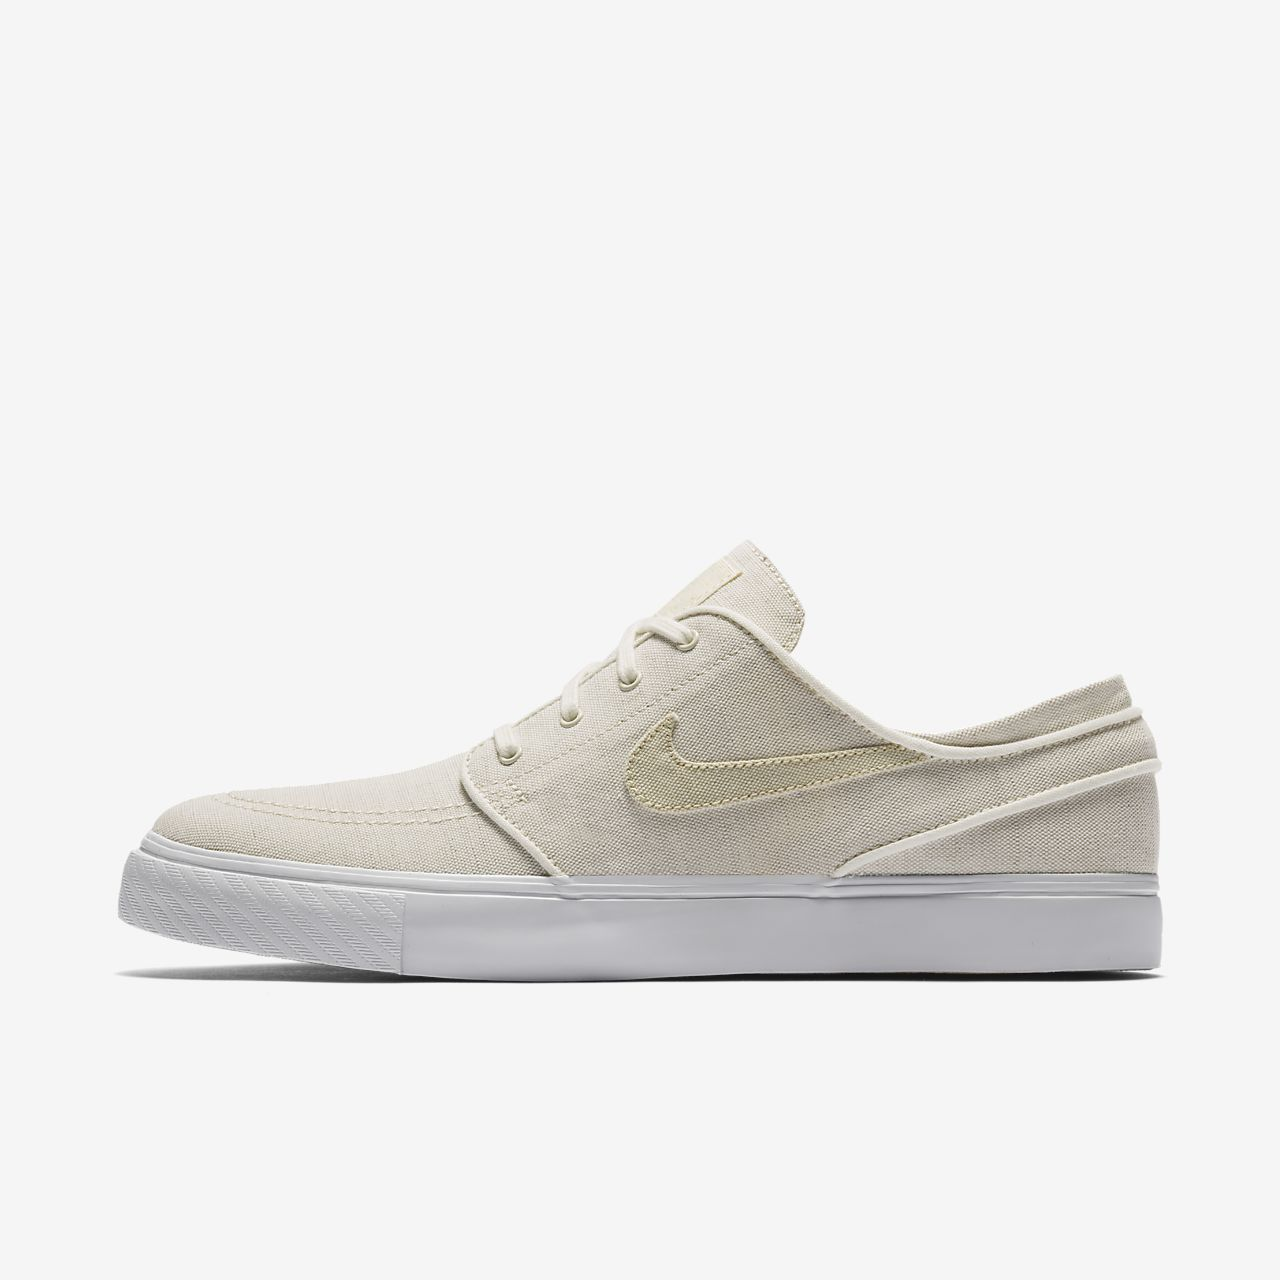 Nike Chaussures SB Zoom Stefan Janoski Canvas Deconstructed Nike